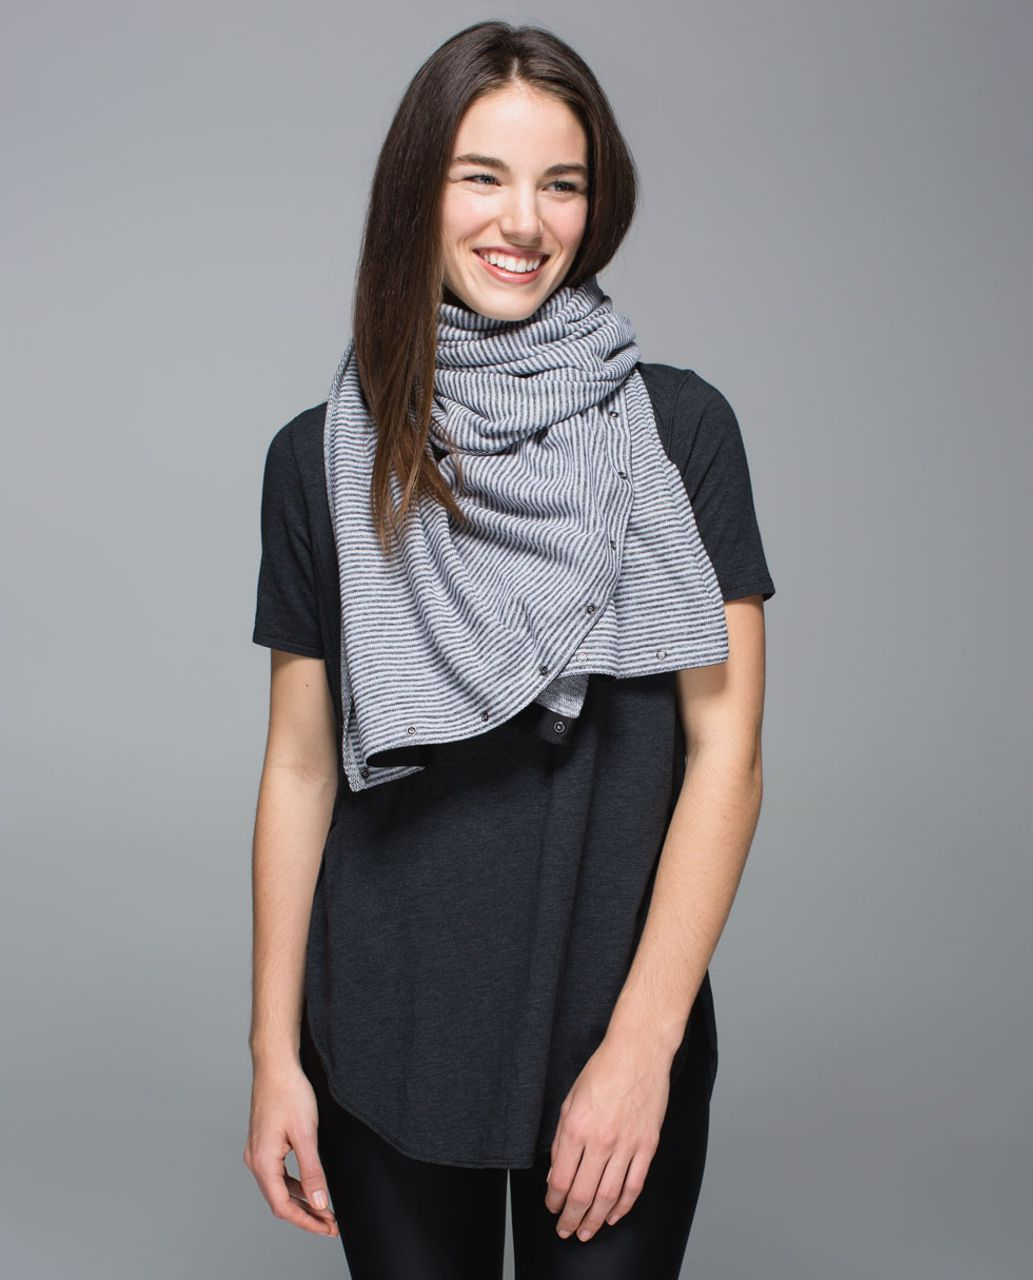 Lululemon Vinyasa Scarf *Rulu - Mini Check Pique White Heathered Black